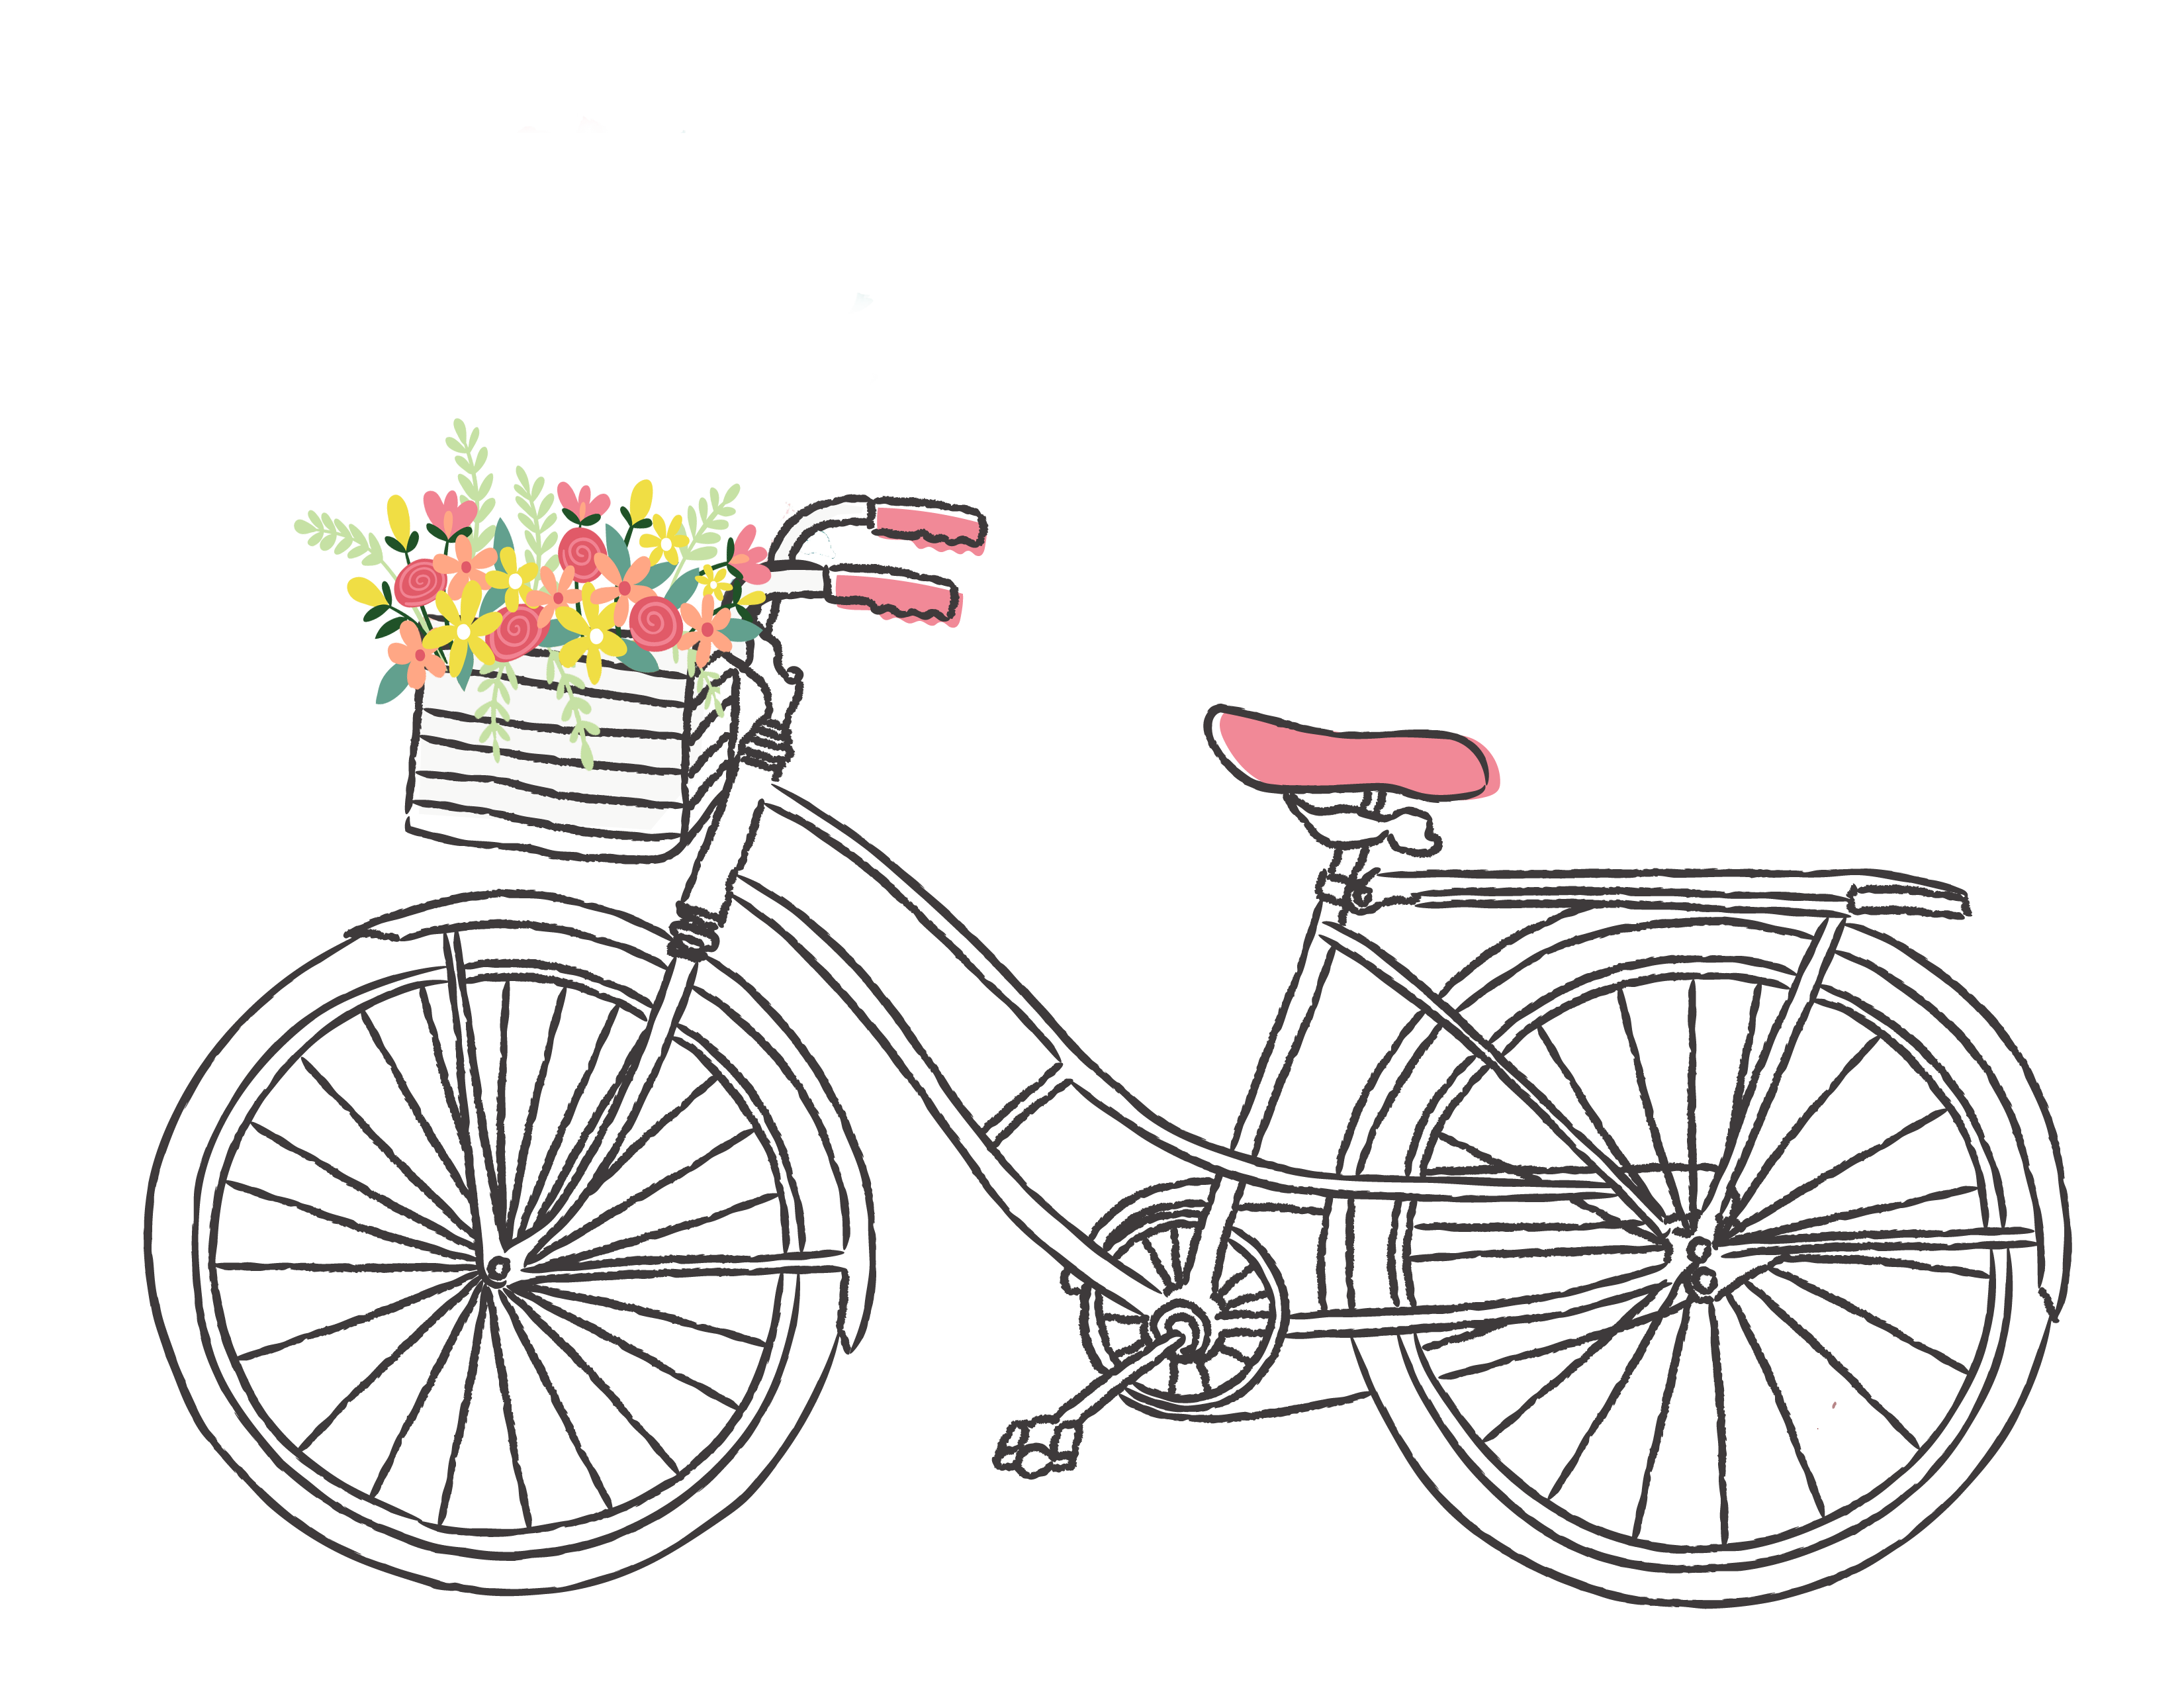 Vintage bike clipart svg royalty free library Free Romantic Bicycle Clip Art | Bike clip art | Bicycle ... svg royalty free library